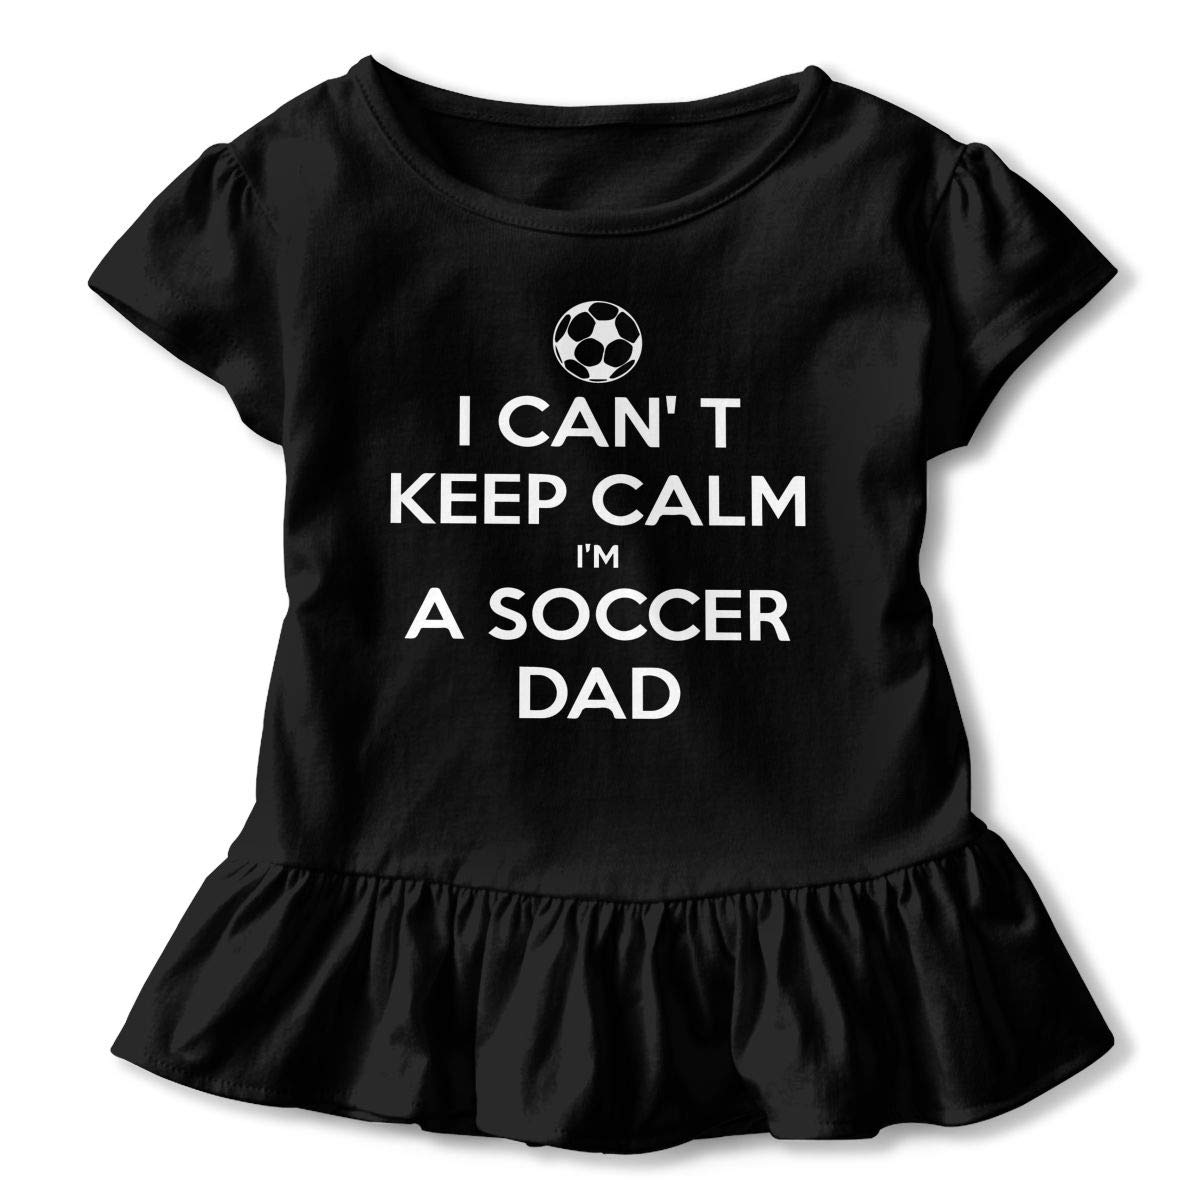 Toddler Girls I Can T Keep Calm Im A Soccer Dad-1 100/% Cotton T Shirts Short Sleeve Ruffle Tee Basic Tops